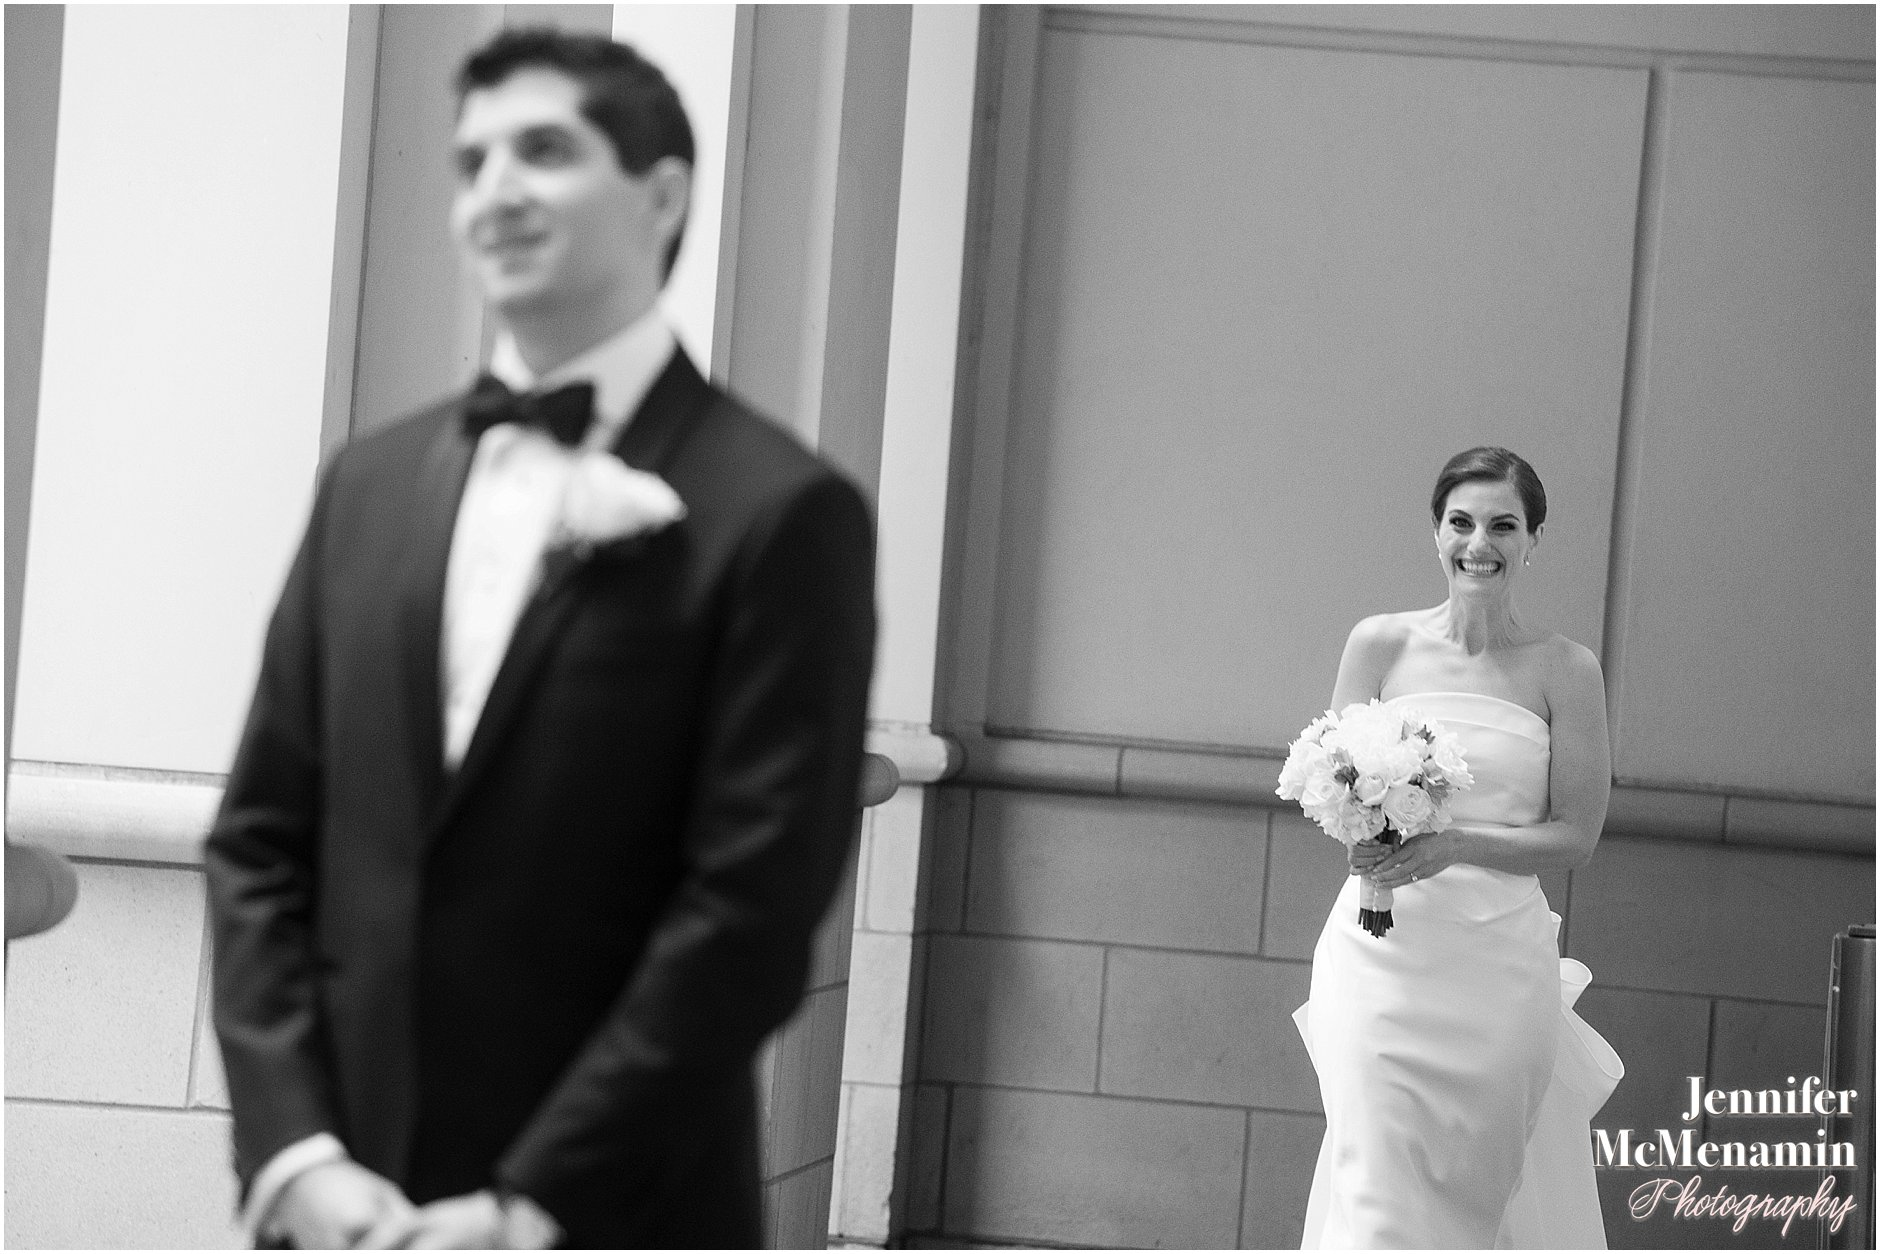 008-Jennifer-McMenamin-Photography-Baltimore-Waterfront-Marriott-wedding_0004